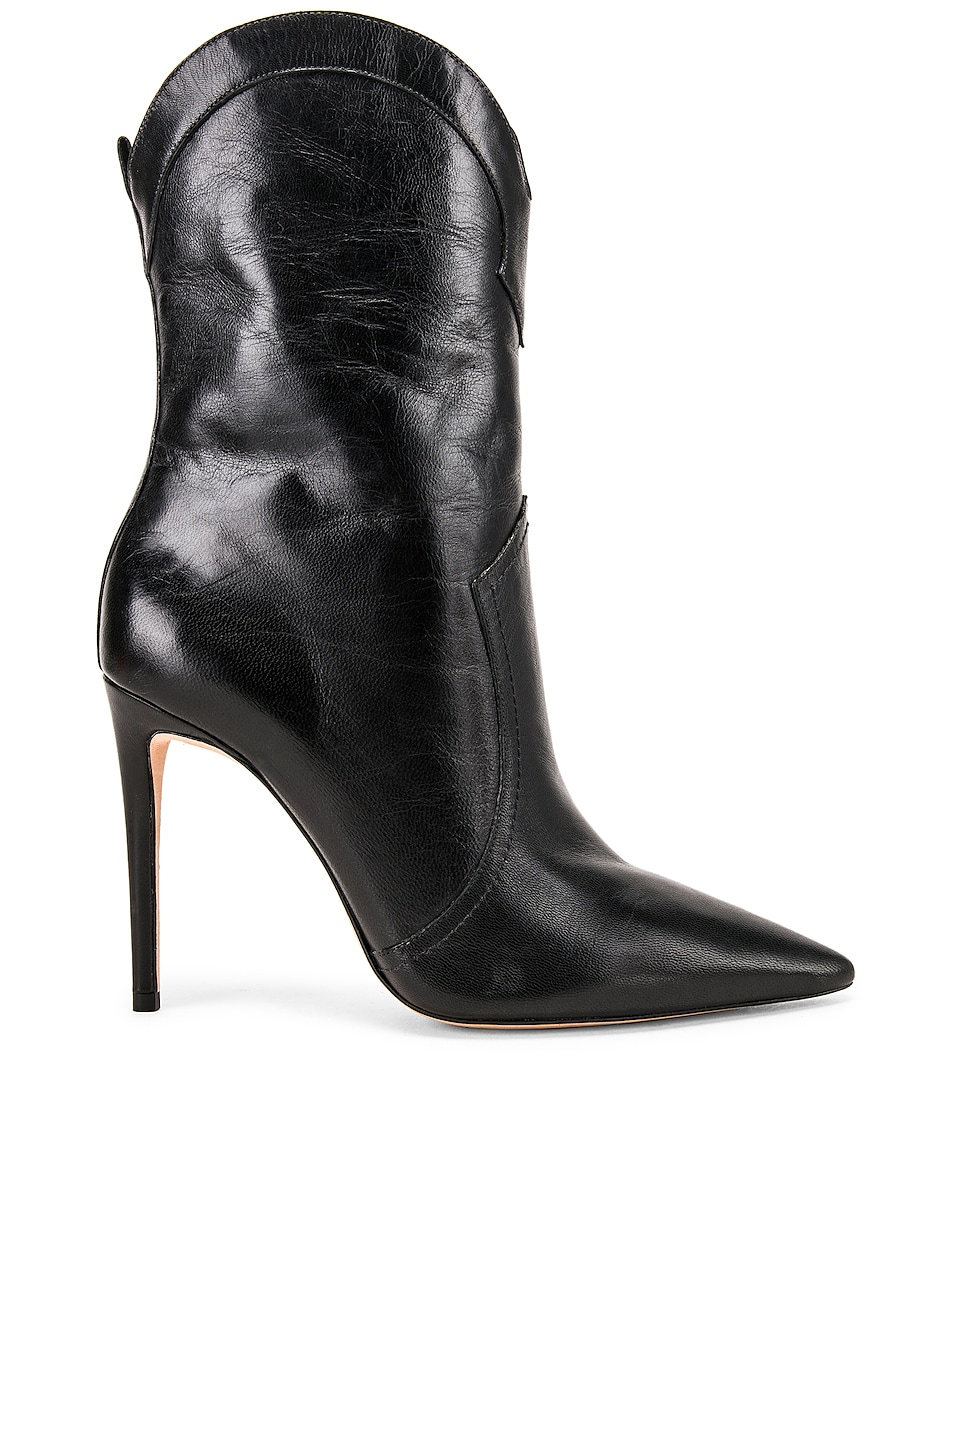 Image 1 of Alexandre Birman Esther Boots in Black